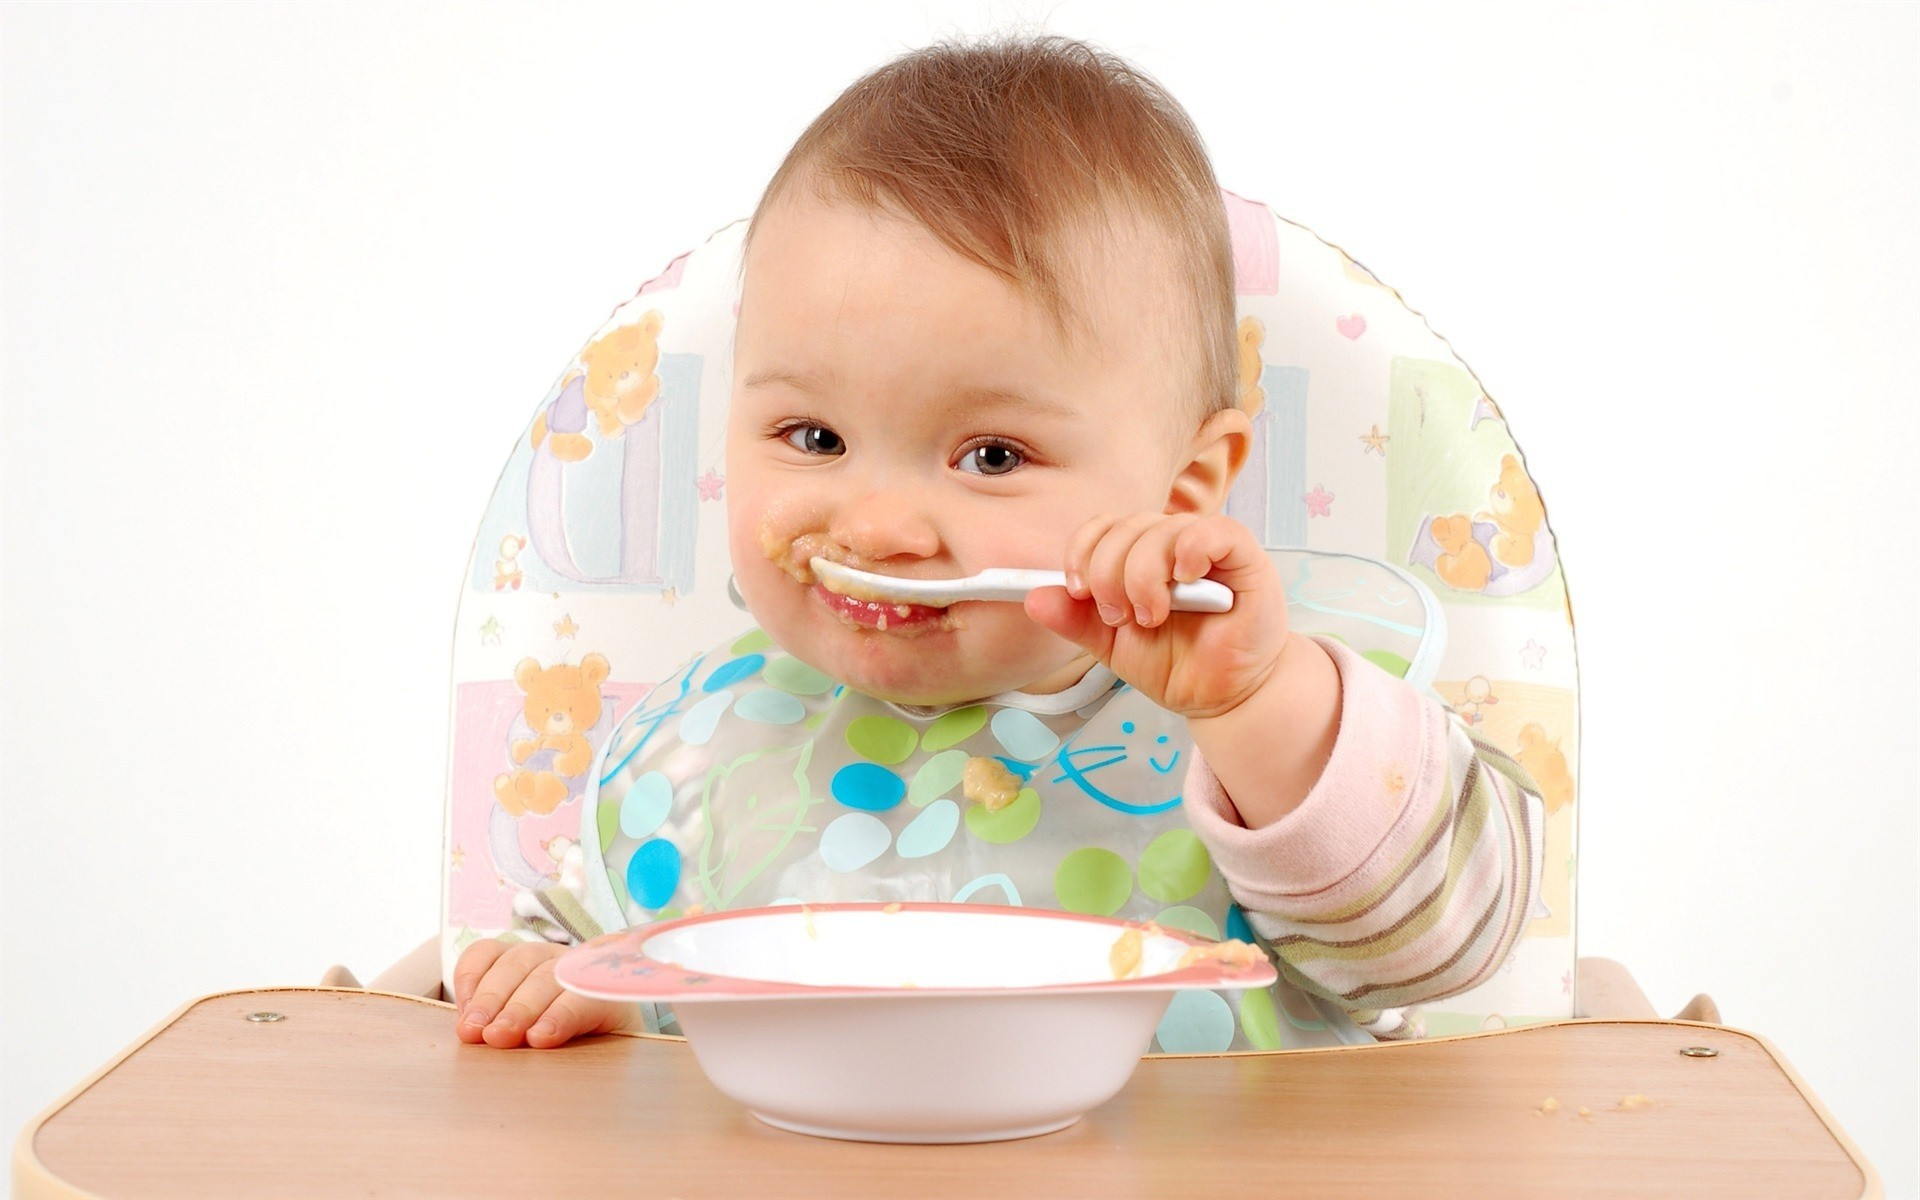 Cute Baby Images Free Download For Mobile: Cute Baby Pics Wallpapers (64+ Images